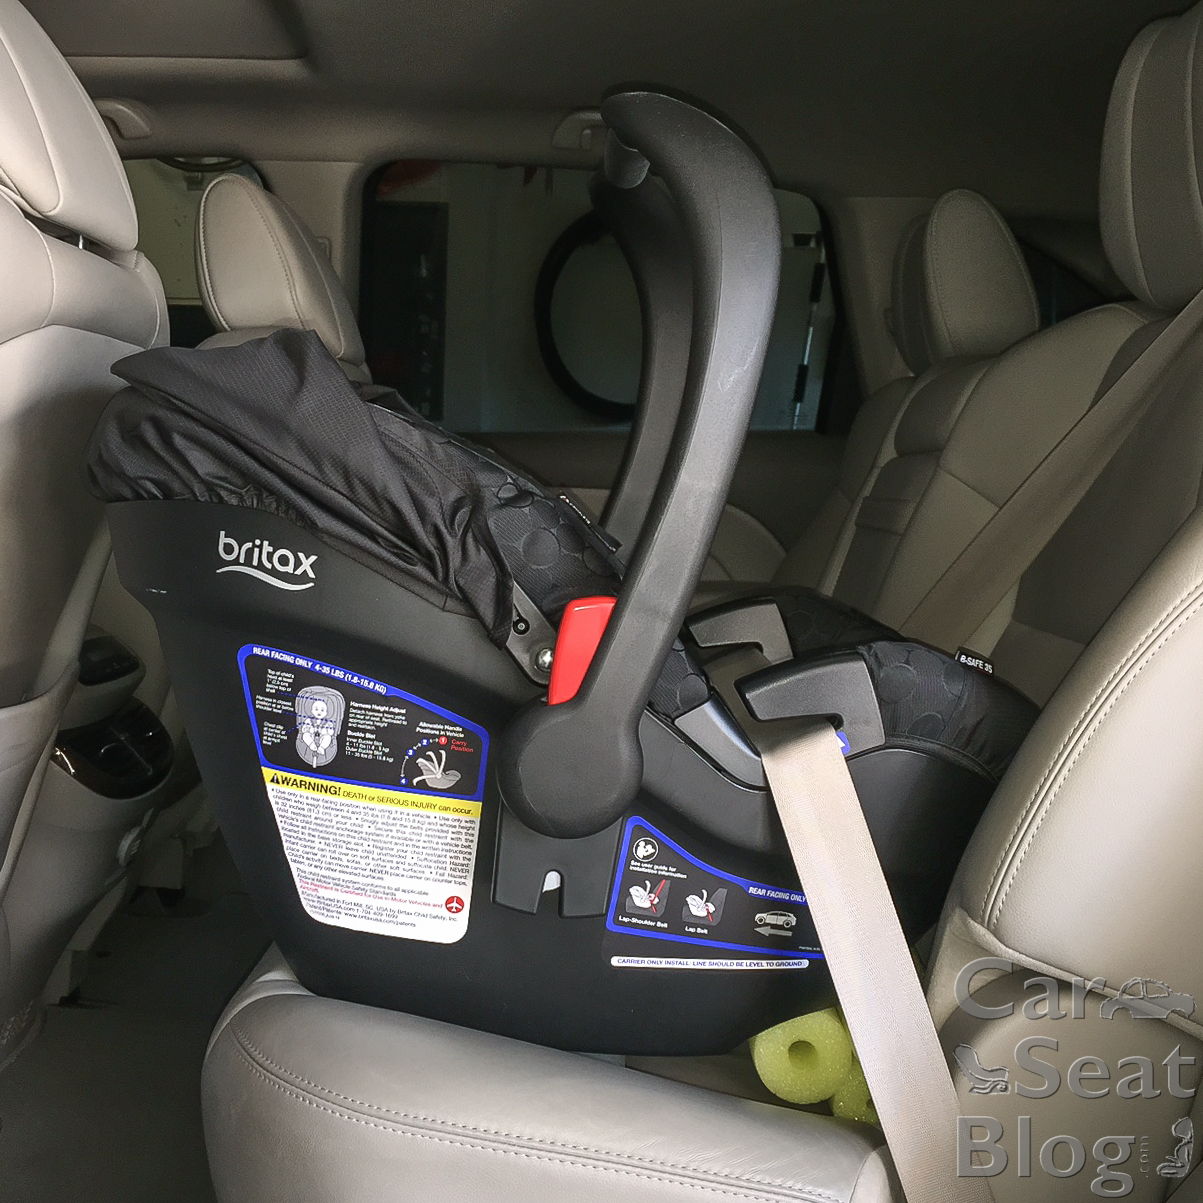 Steelcraft Infant Carrier Dimensions Carseatblog The Most Trusted Source For Car Seat Reviews